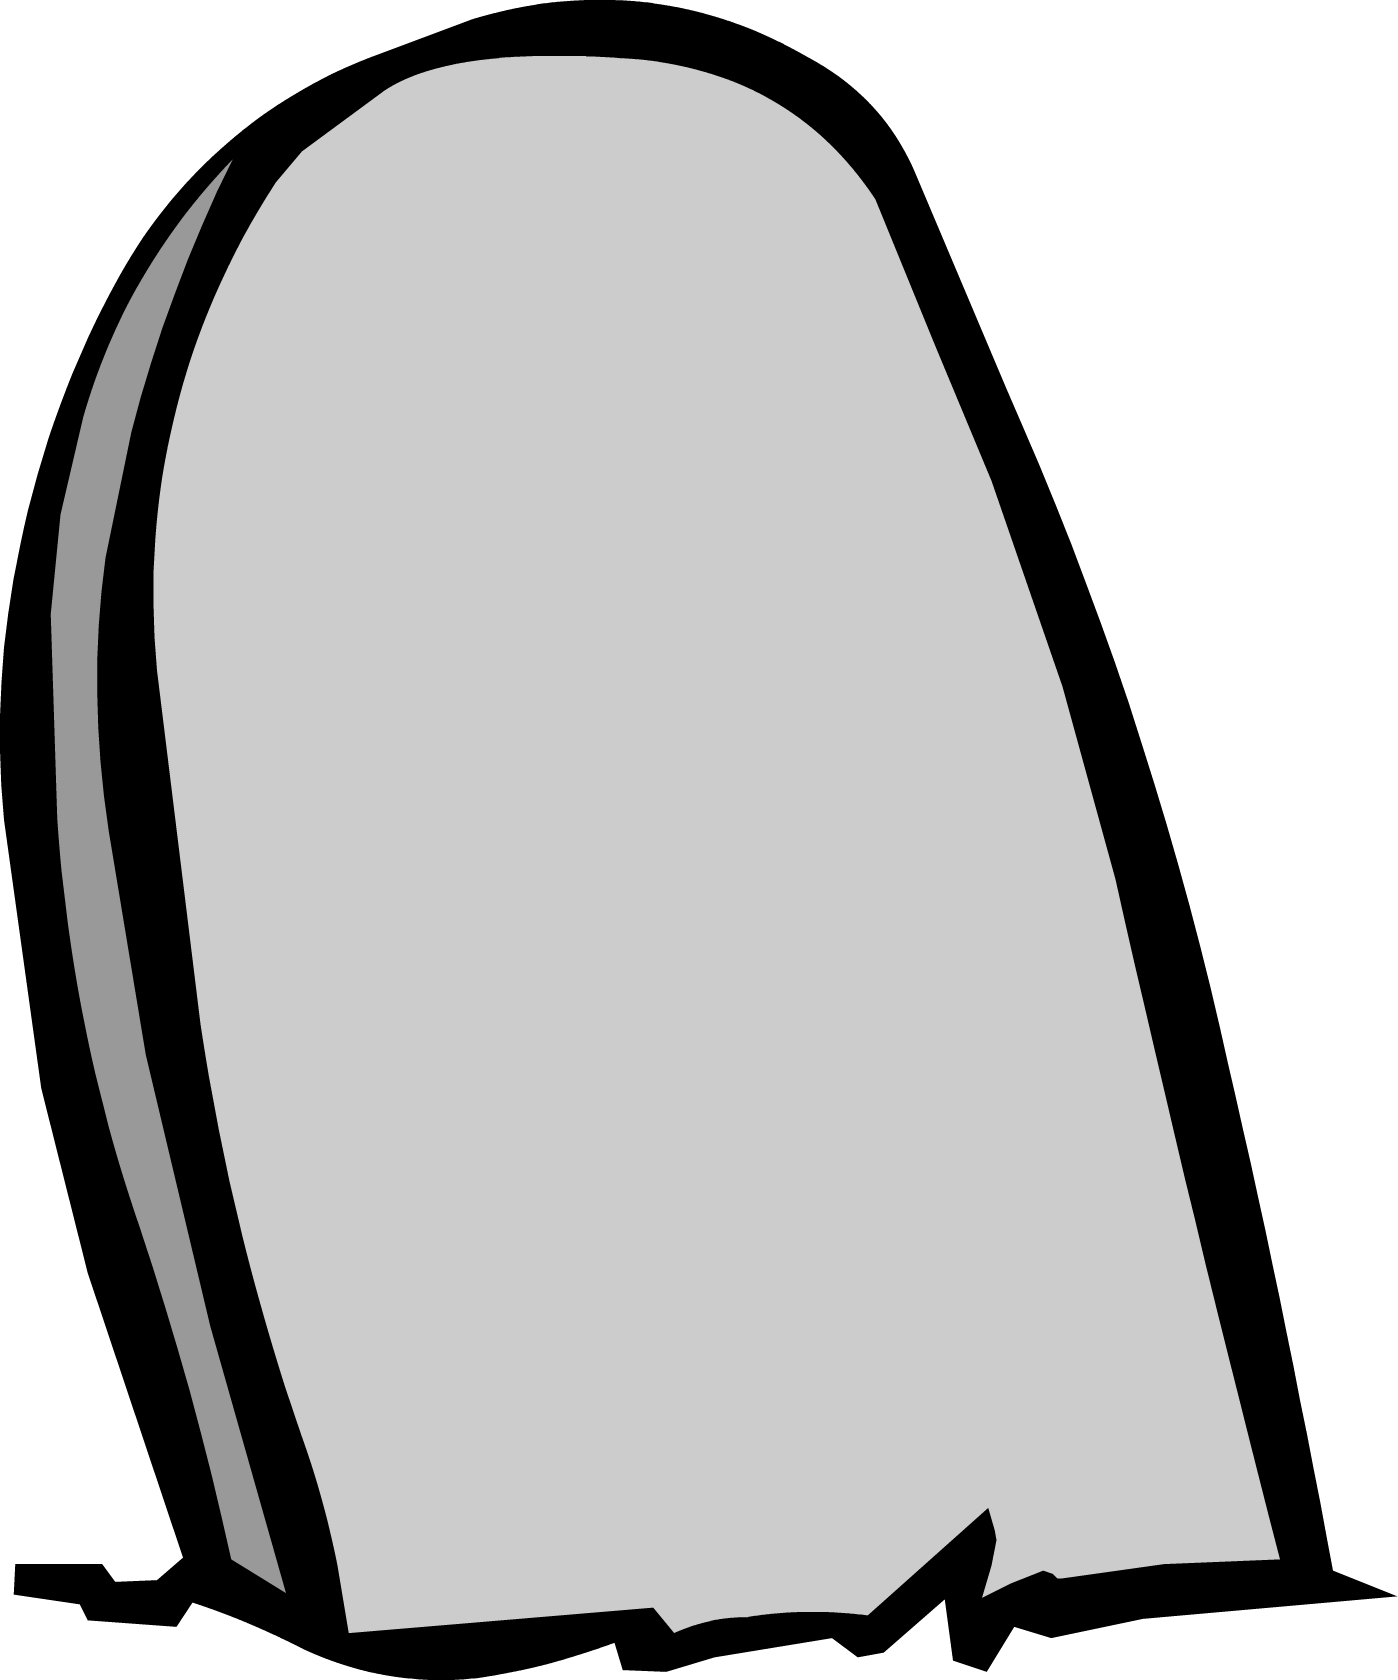 Grave clipart blank #5